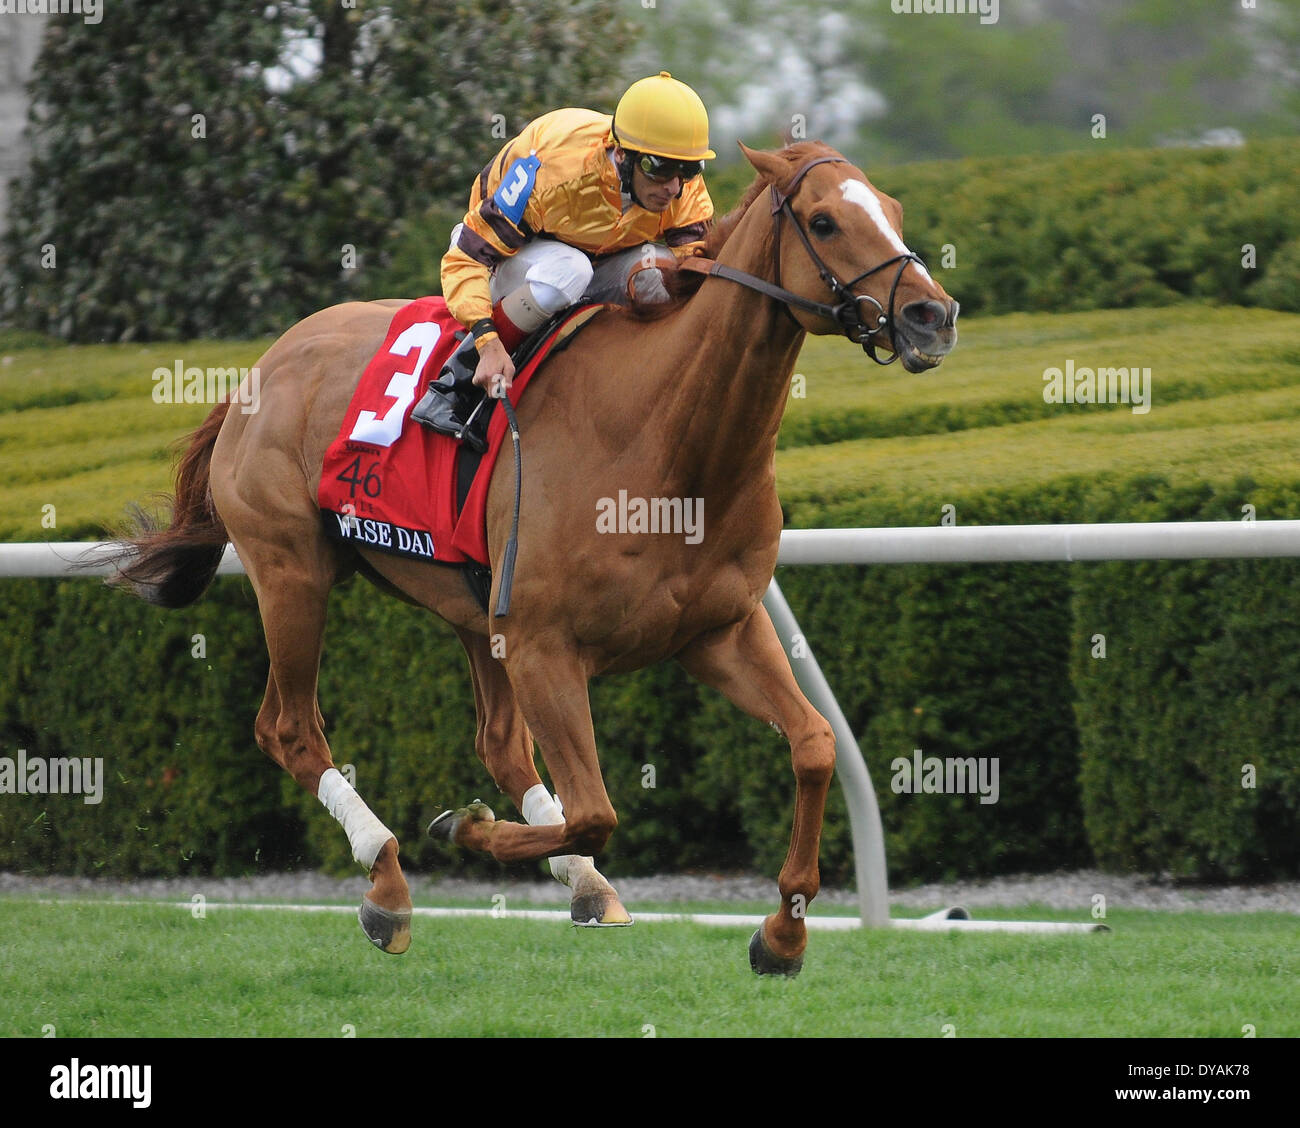 Lexington, KY, USA. 11th Apr, 2014. Aoril 11, 2014: Wise Dan and jockey John Velazquez win the G1 Maker's 46 Mile at Keeneland for trainer Charles LoPresti and owner Morton Fink.Jessica Morgan/ESW/CSM/Alamy Live News - Stock Image